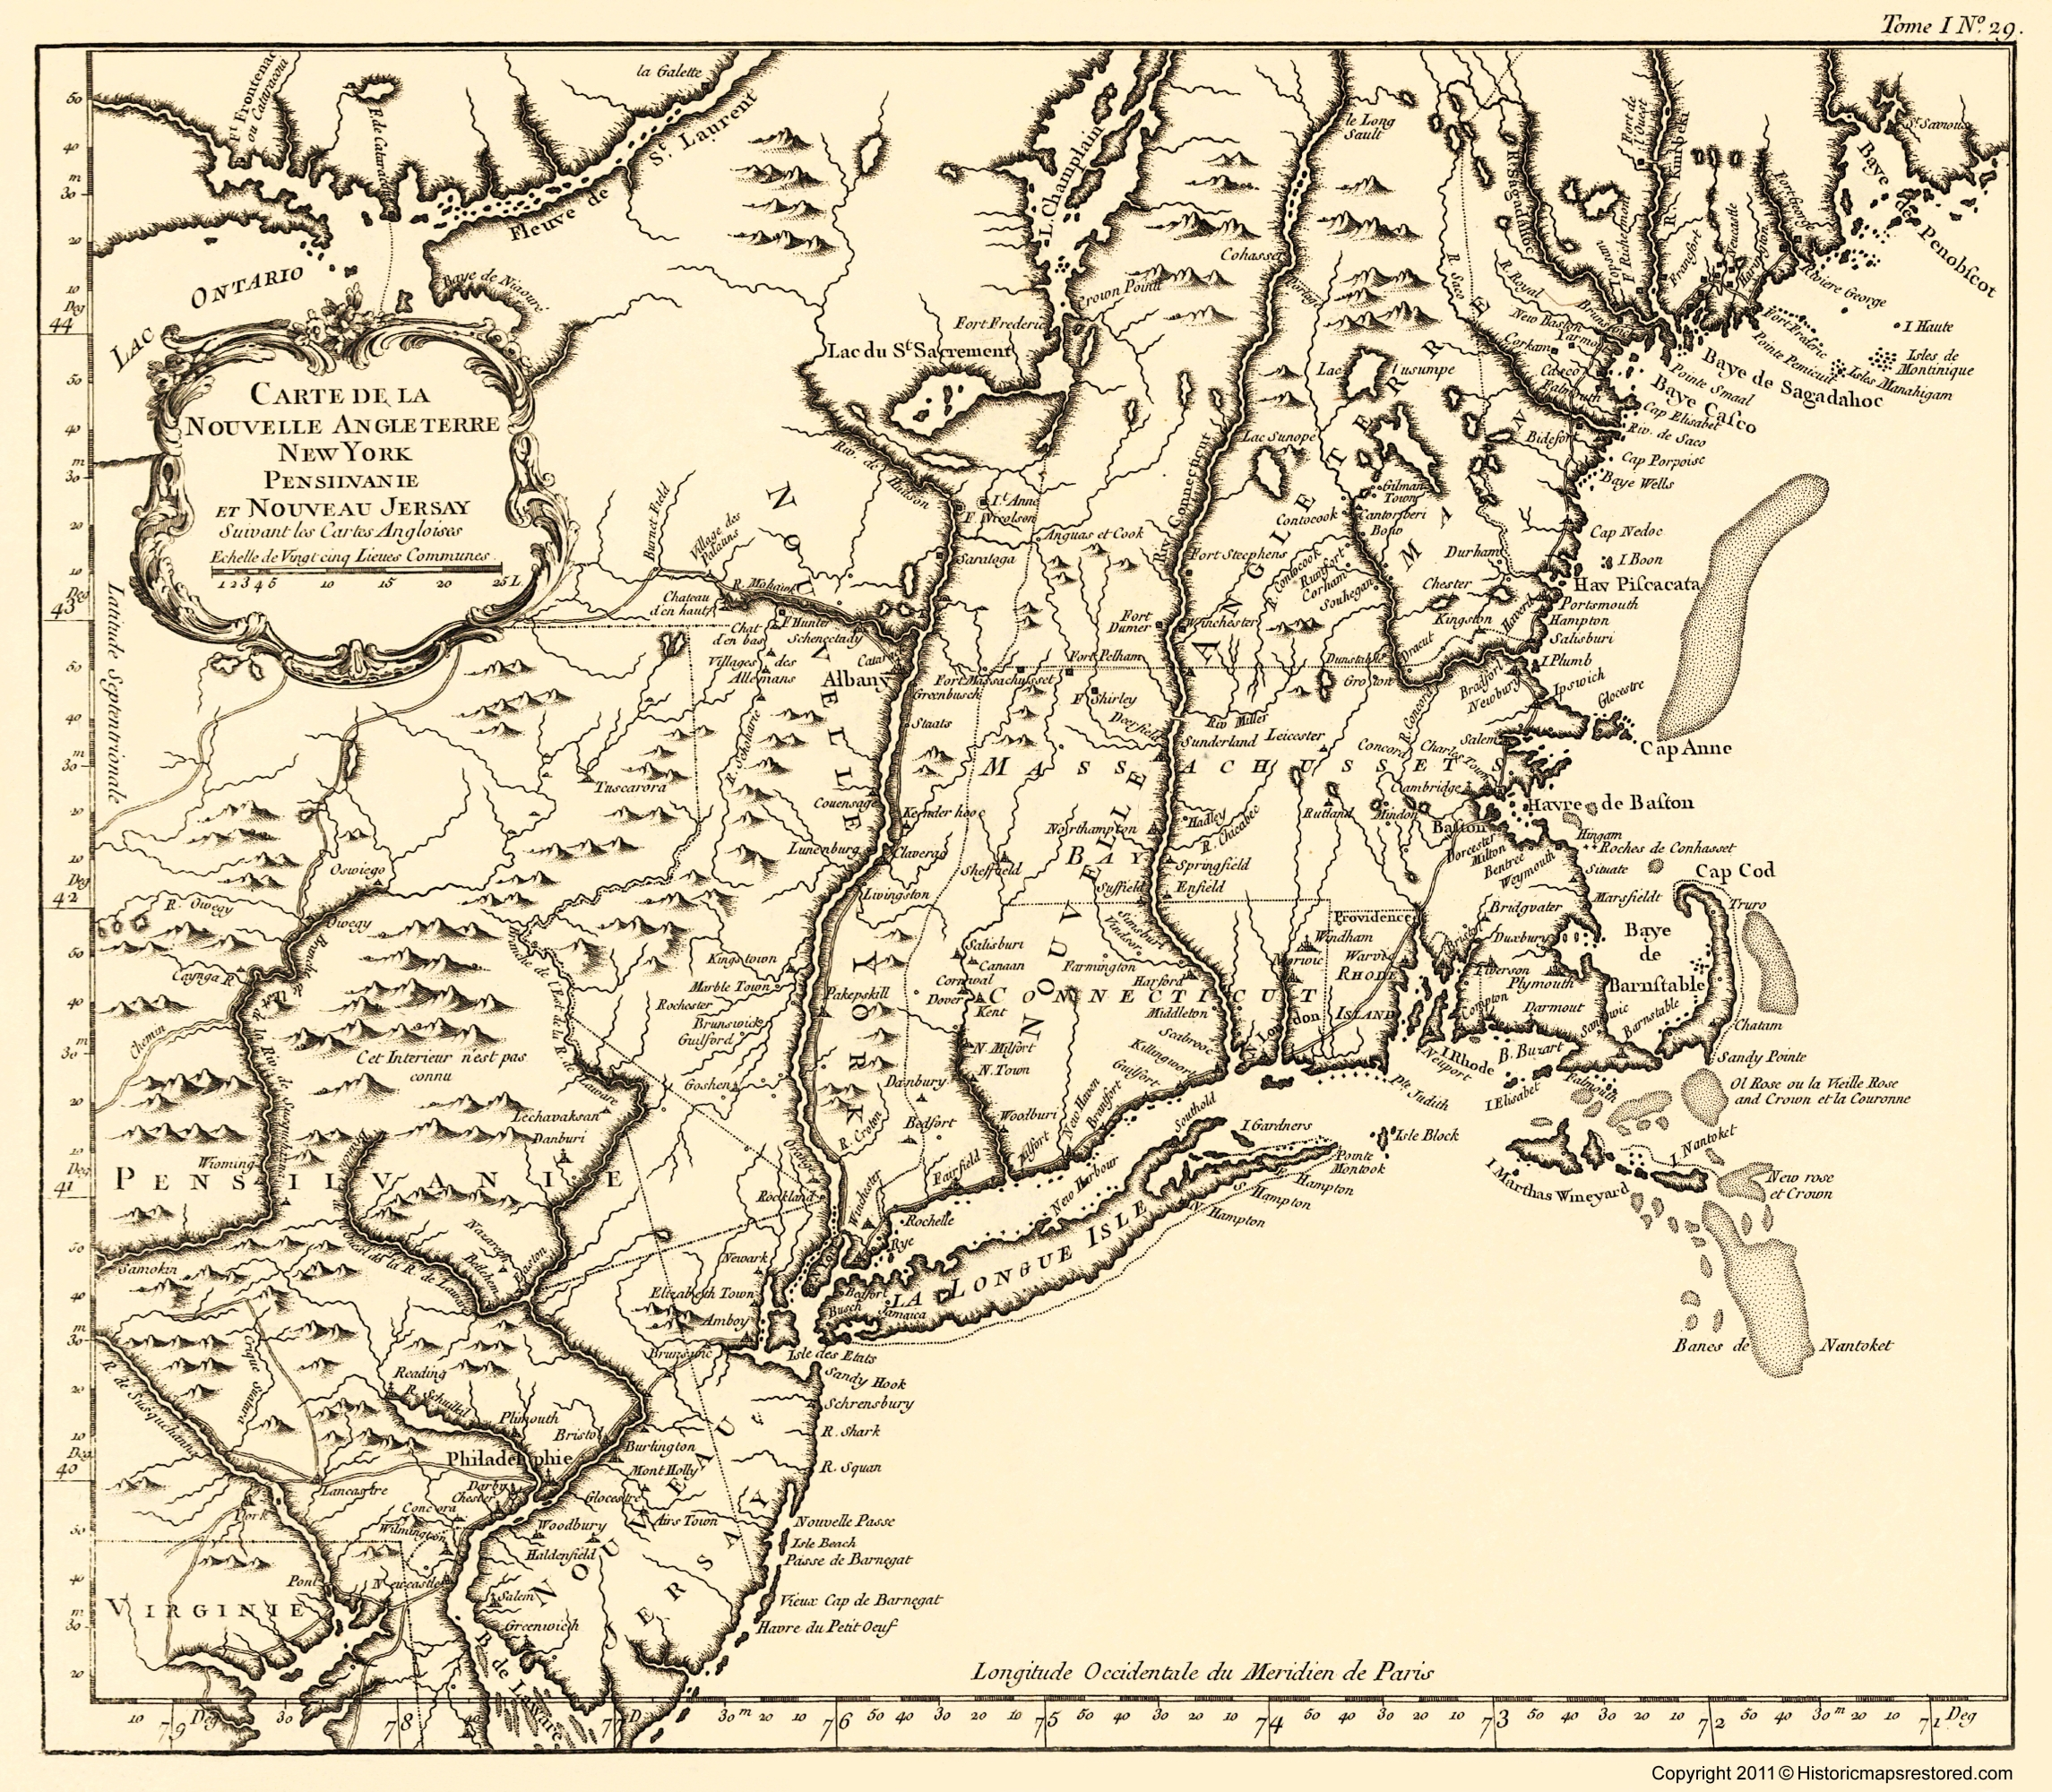 Old War Map - New York, Pennsylvania, and New Jersey 1757 - 23 x 26.33